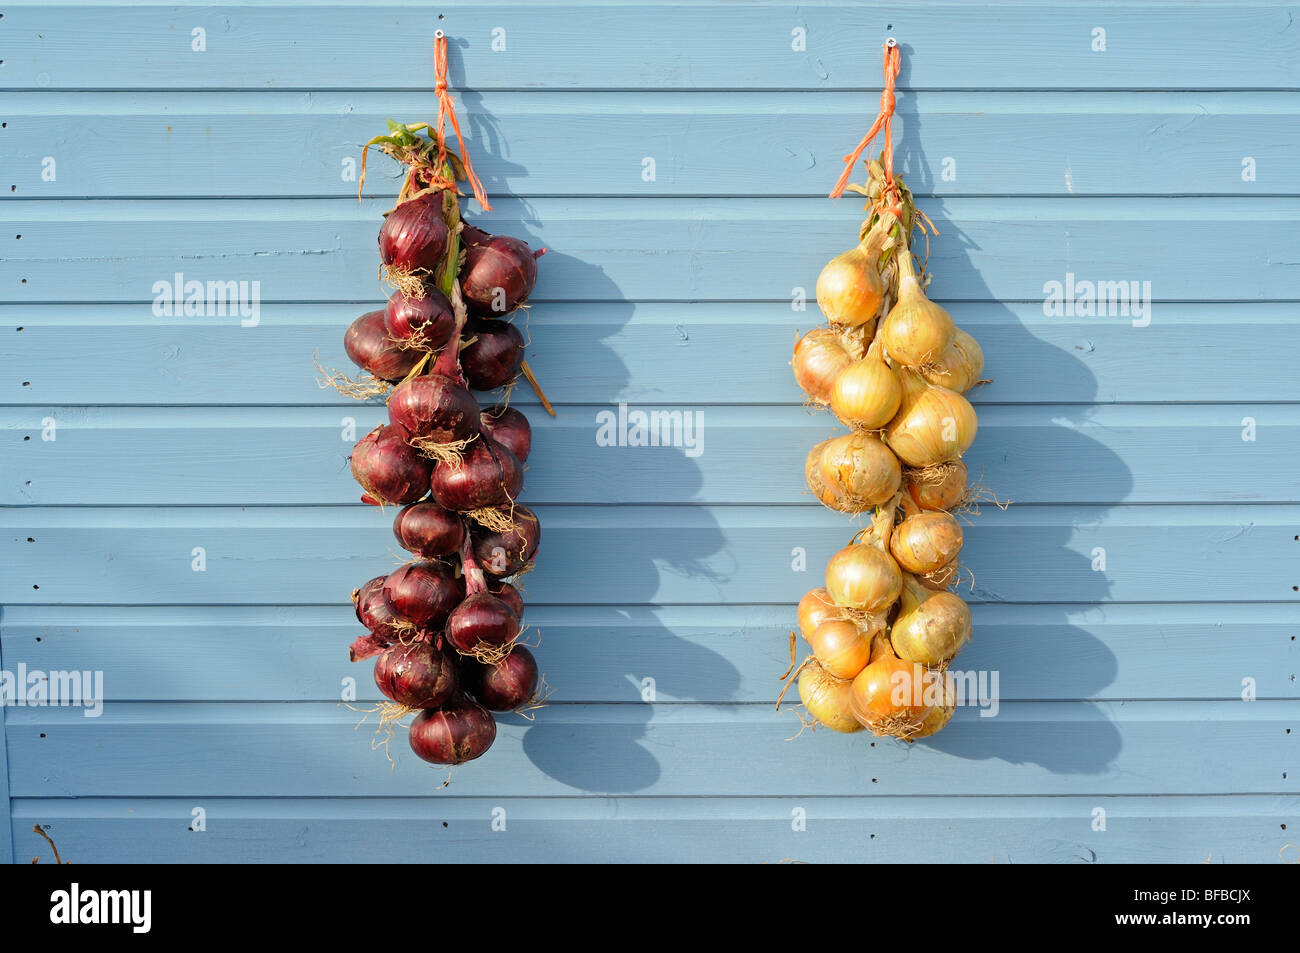 Braided Onions Stock Photos & Braided Onions Stock Images - Alamy